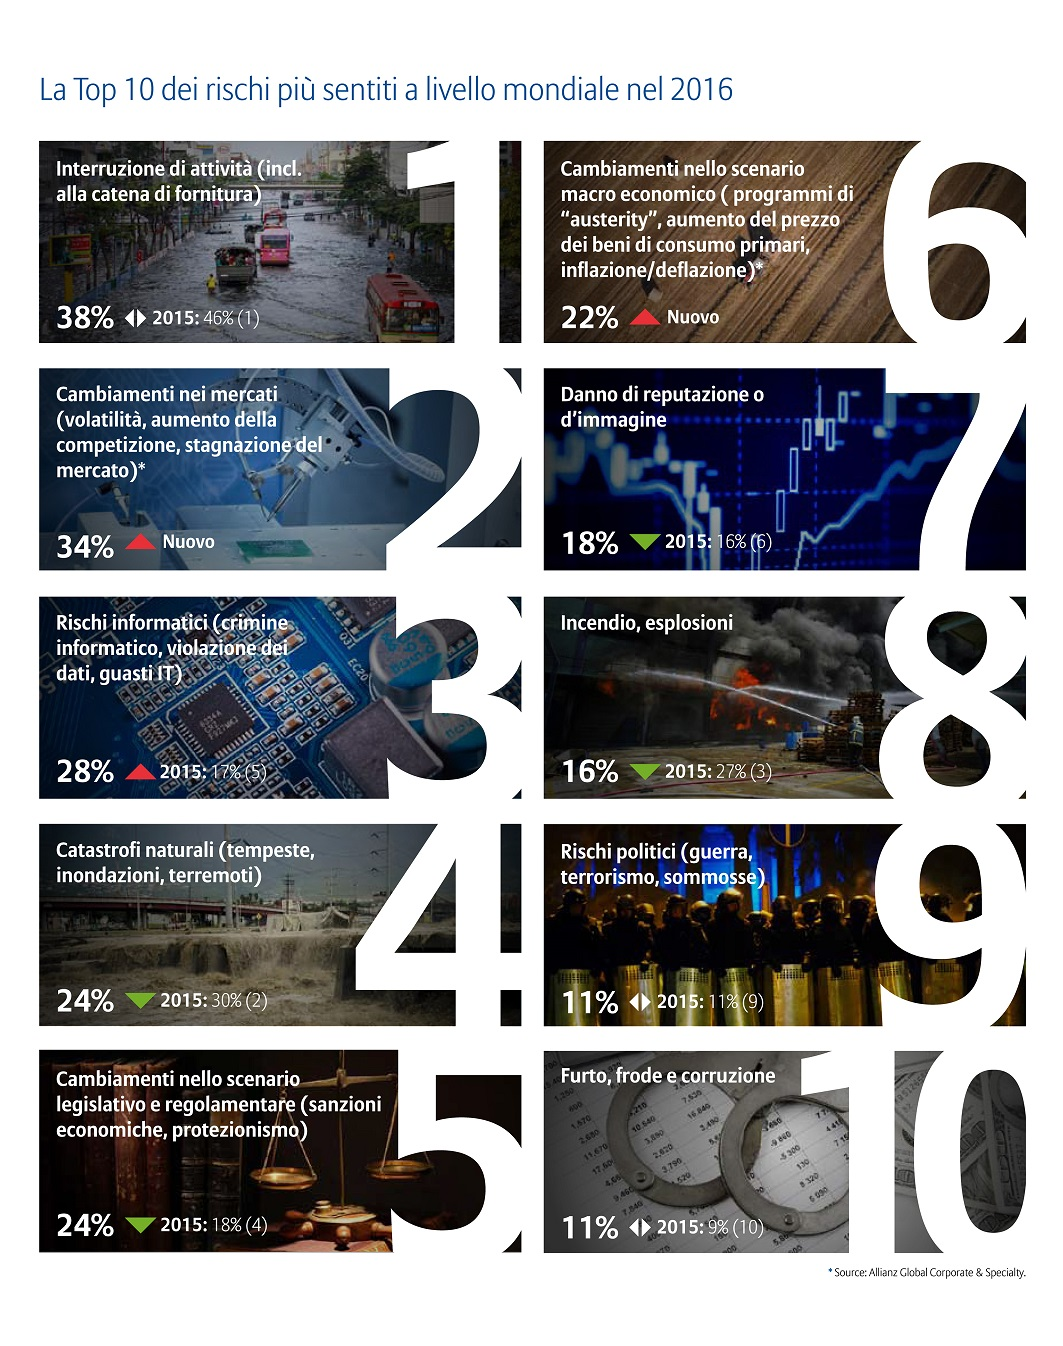 Allianz Risk Barometer - source: Allianz Global Corporate & security